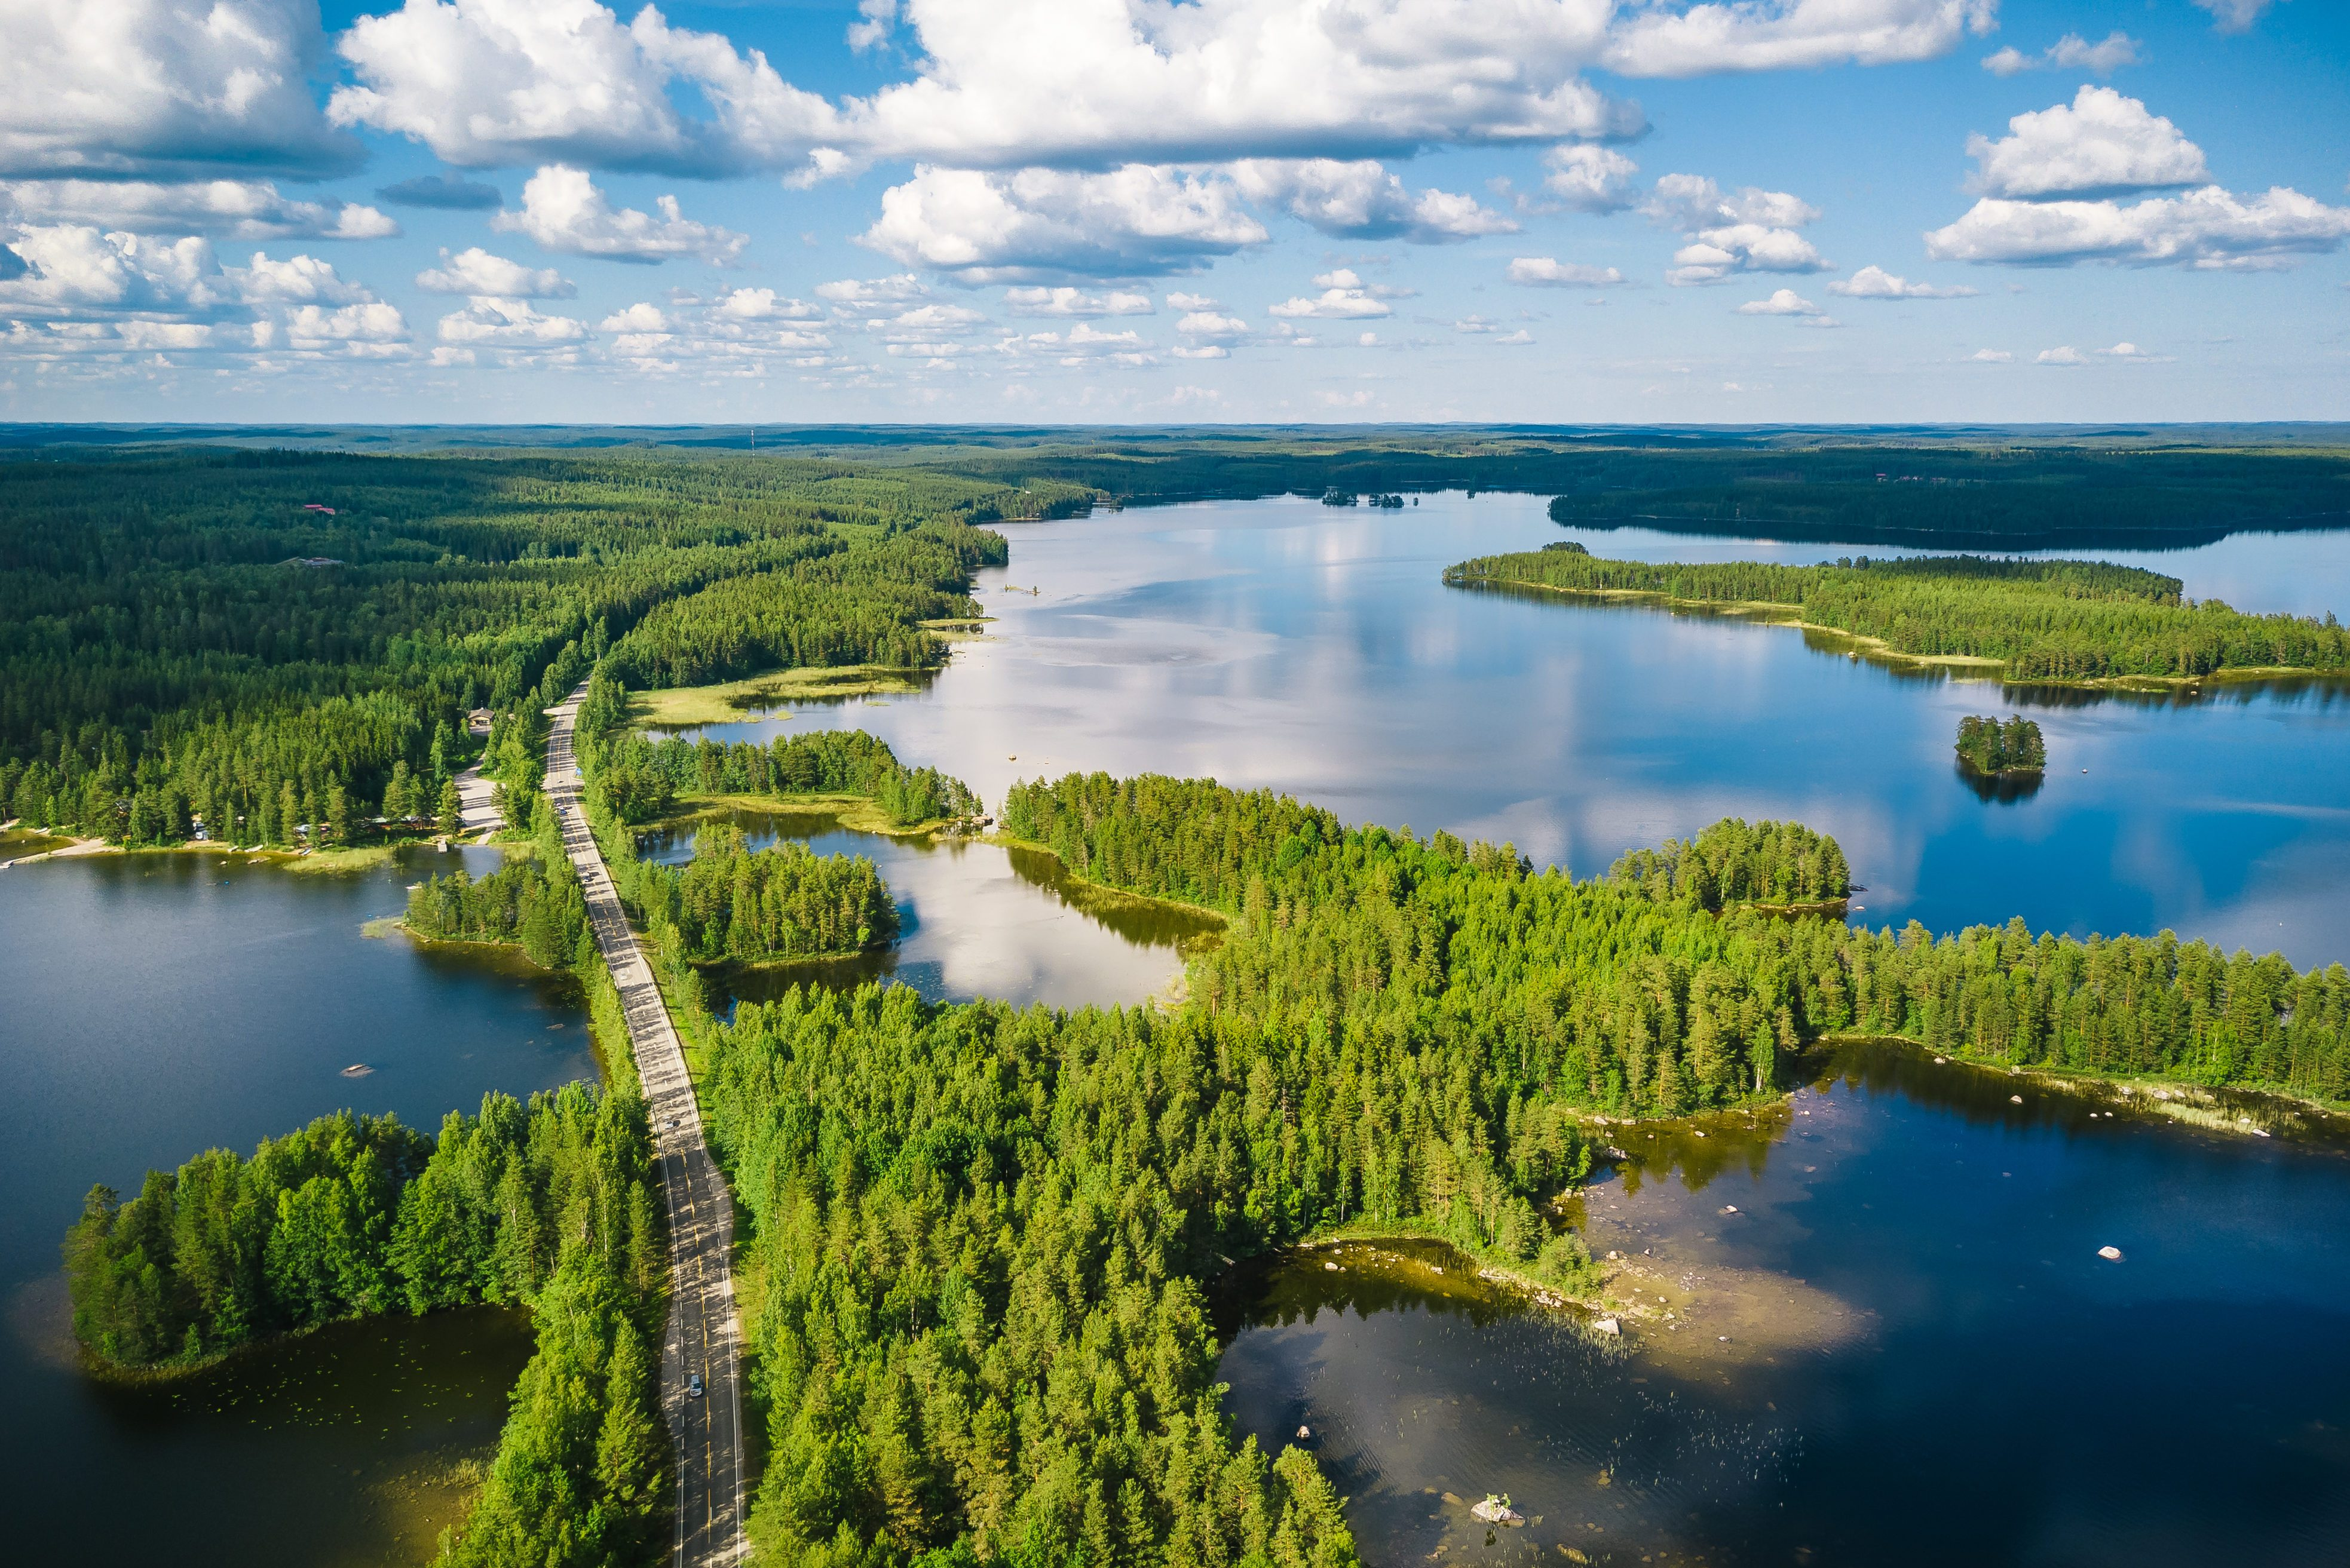 Aerial view of a winding road passing through forests & lakes in Finland on a summer day